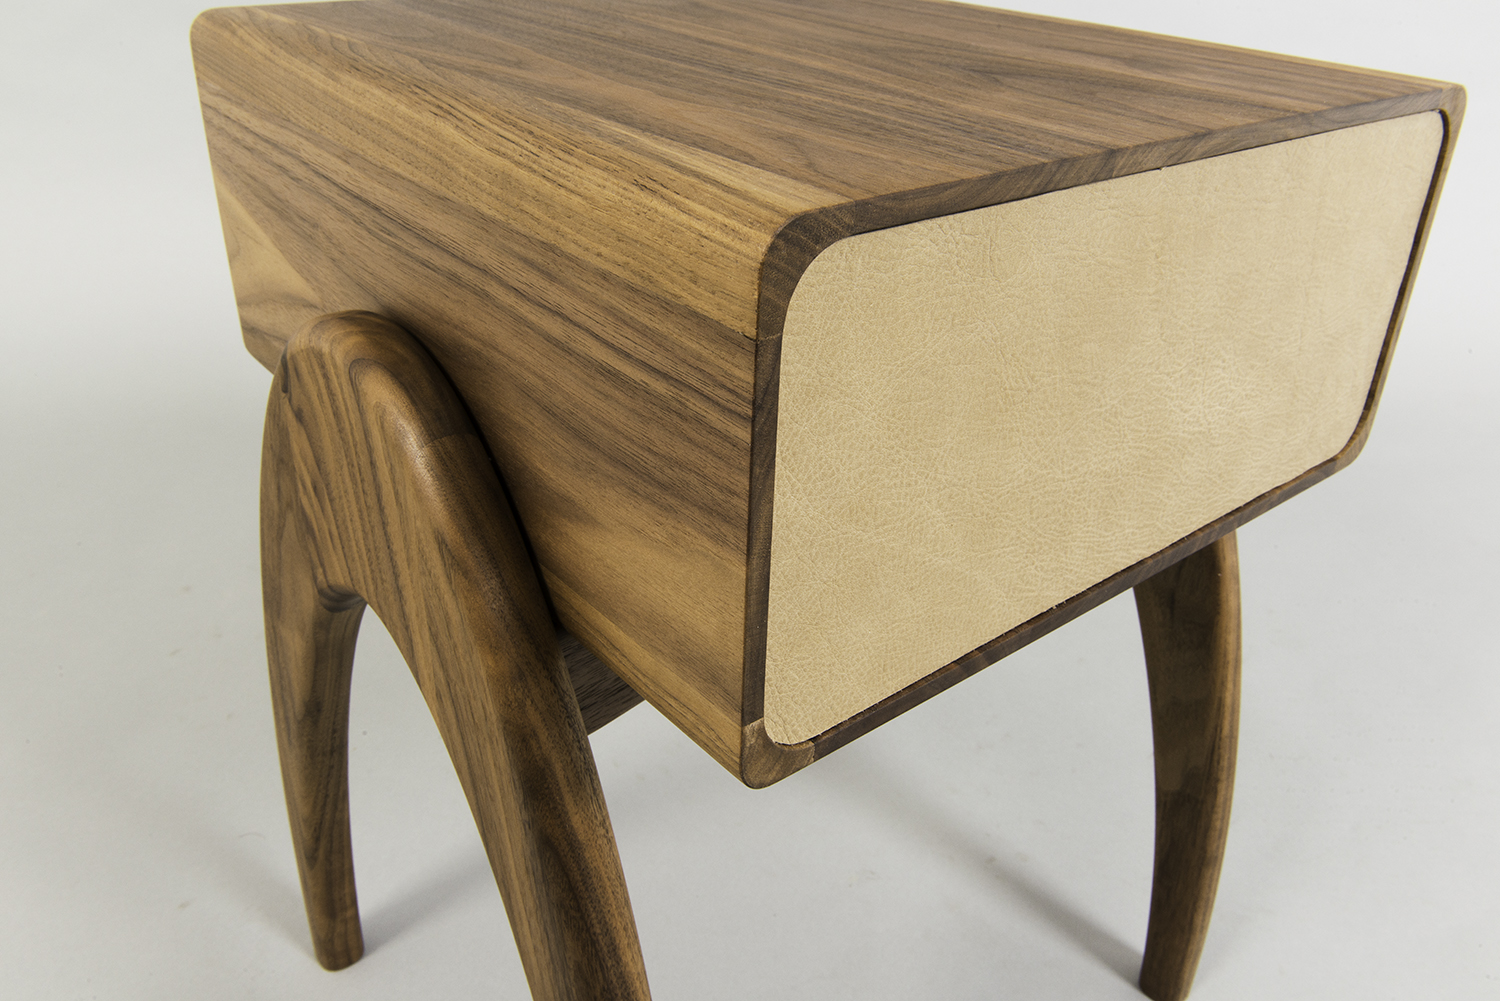 Retrospect Sidetable by Alan Flannery Furniture Design low13.jpg